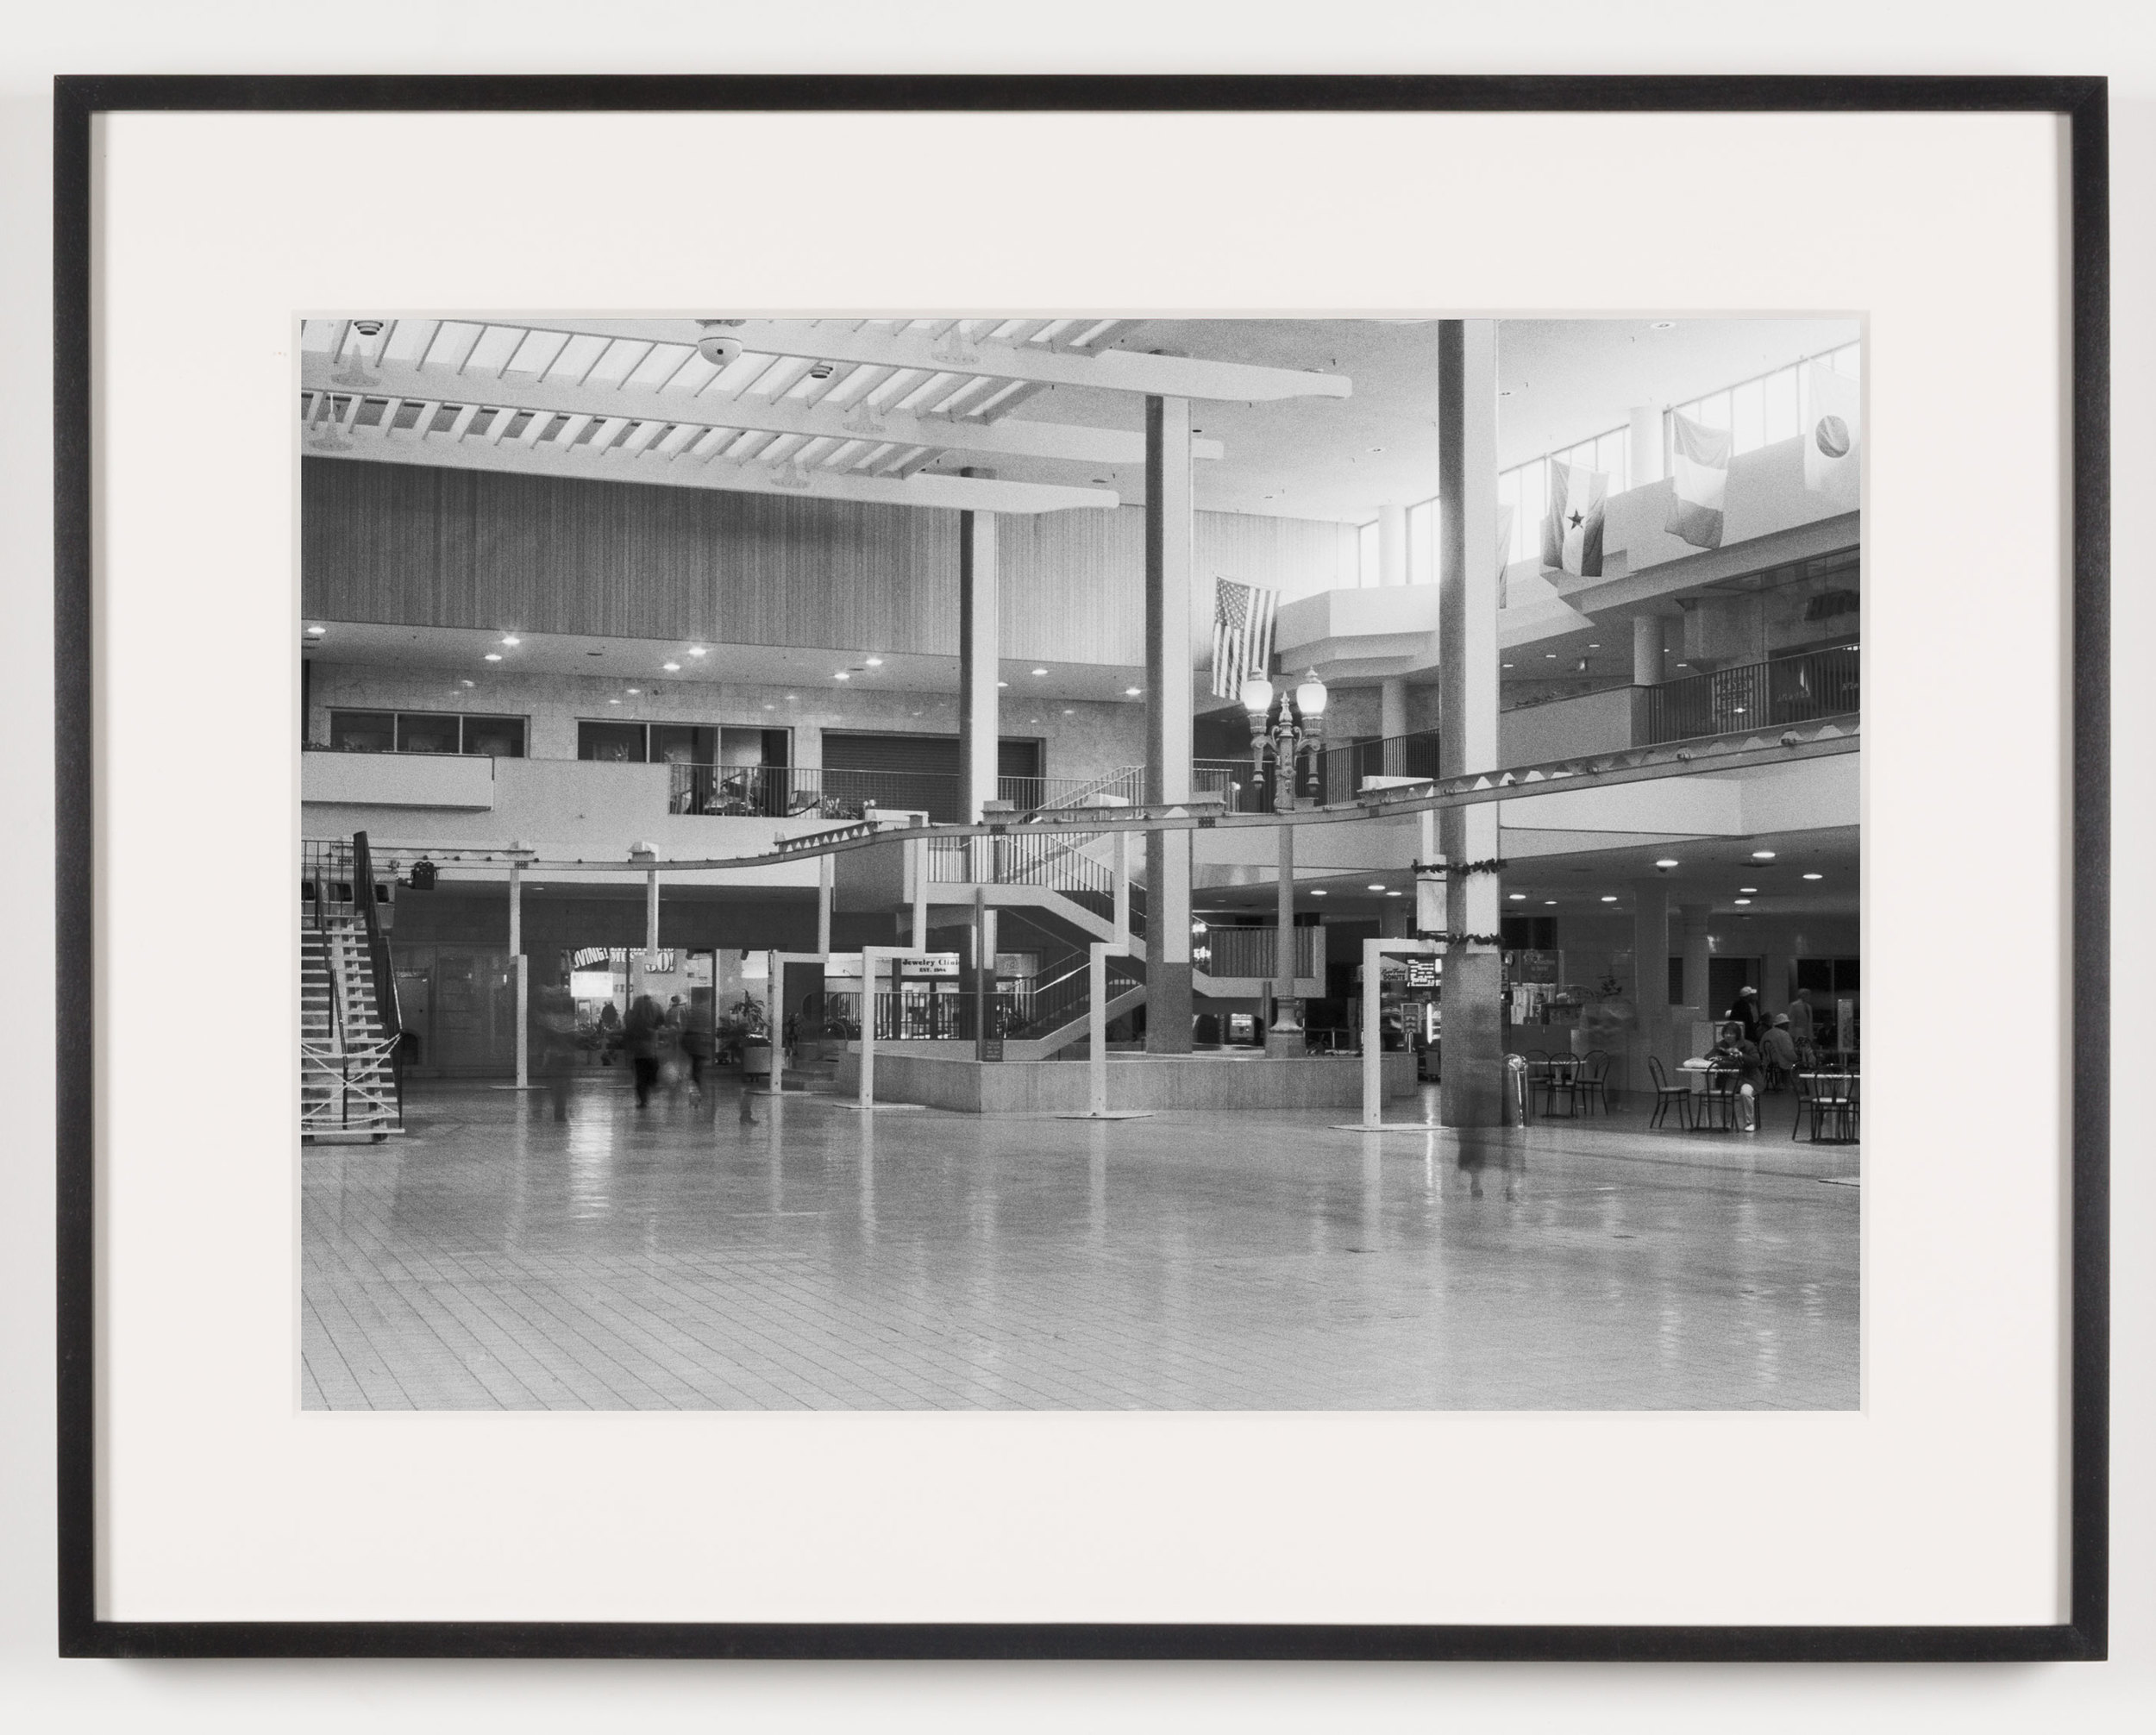 Midtown Plaza (View of Central Plaza Looking South), Rochester, NY. Est. 1962, Demo 2008    2011   Epson Ultrachrome K3 archival ink jet print on Hahnemühle Photo Rag paper  21 5/8 x 28 1/8 inches   American Passages, 2001–2011